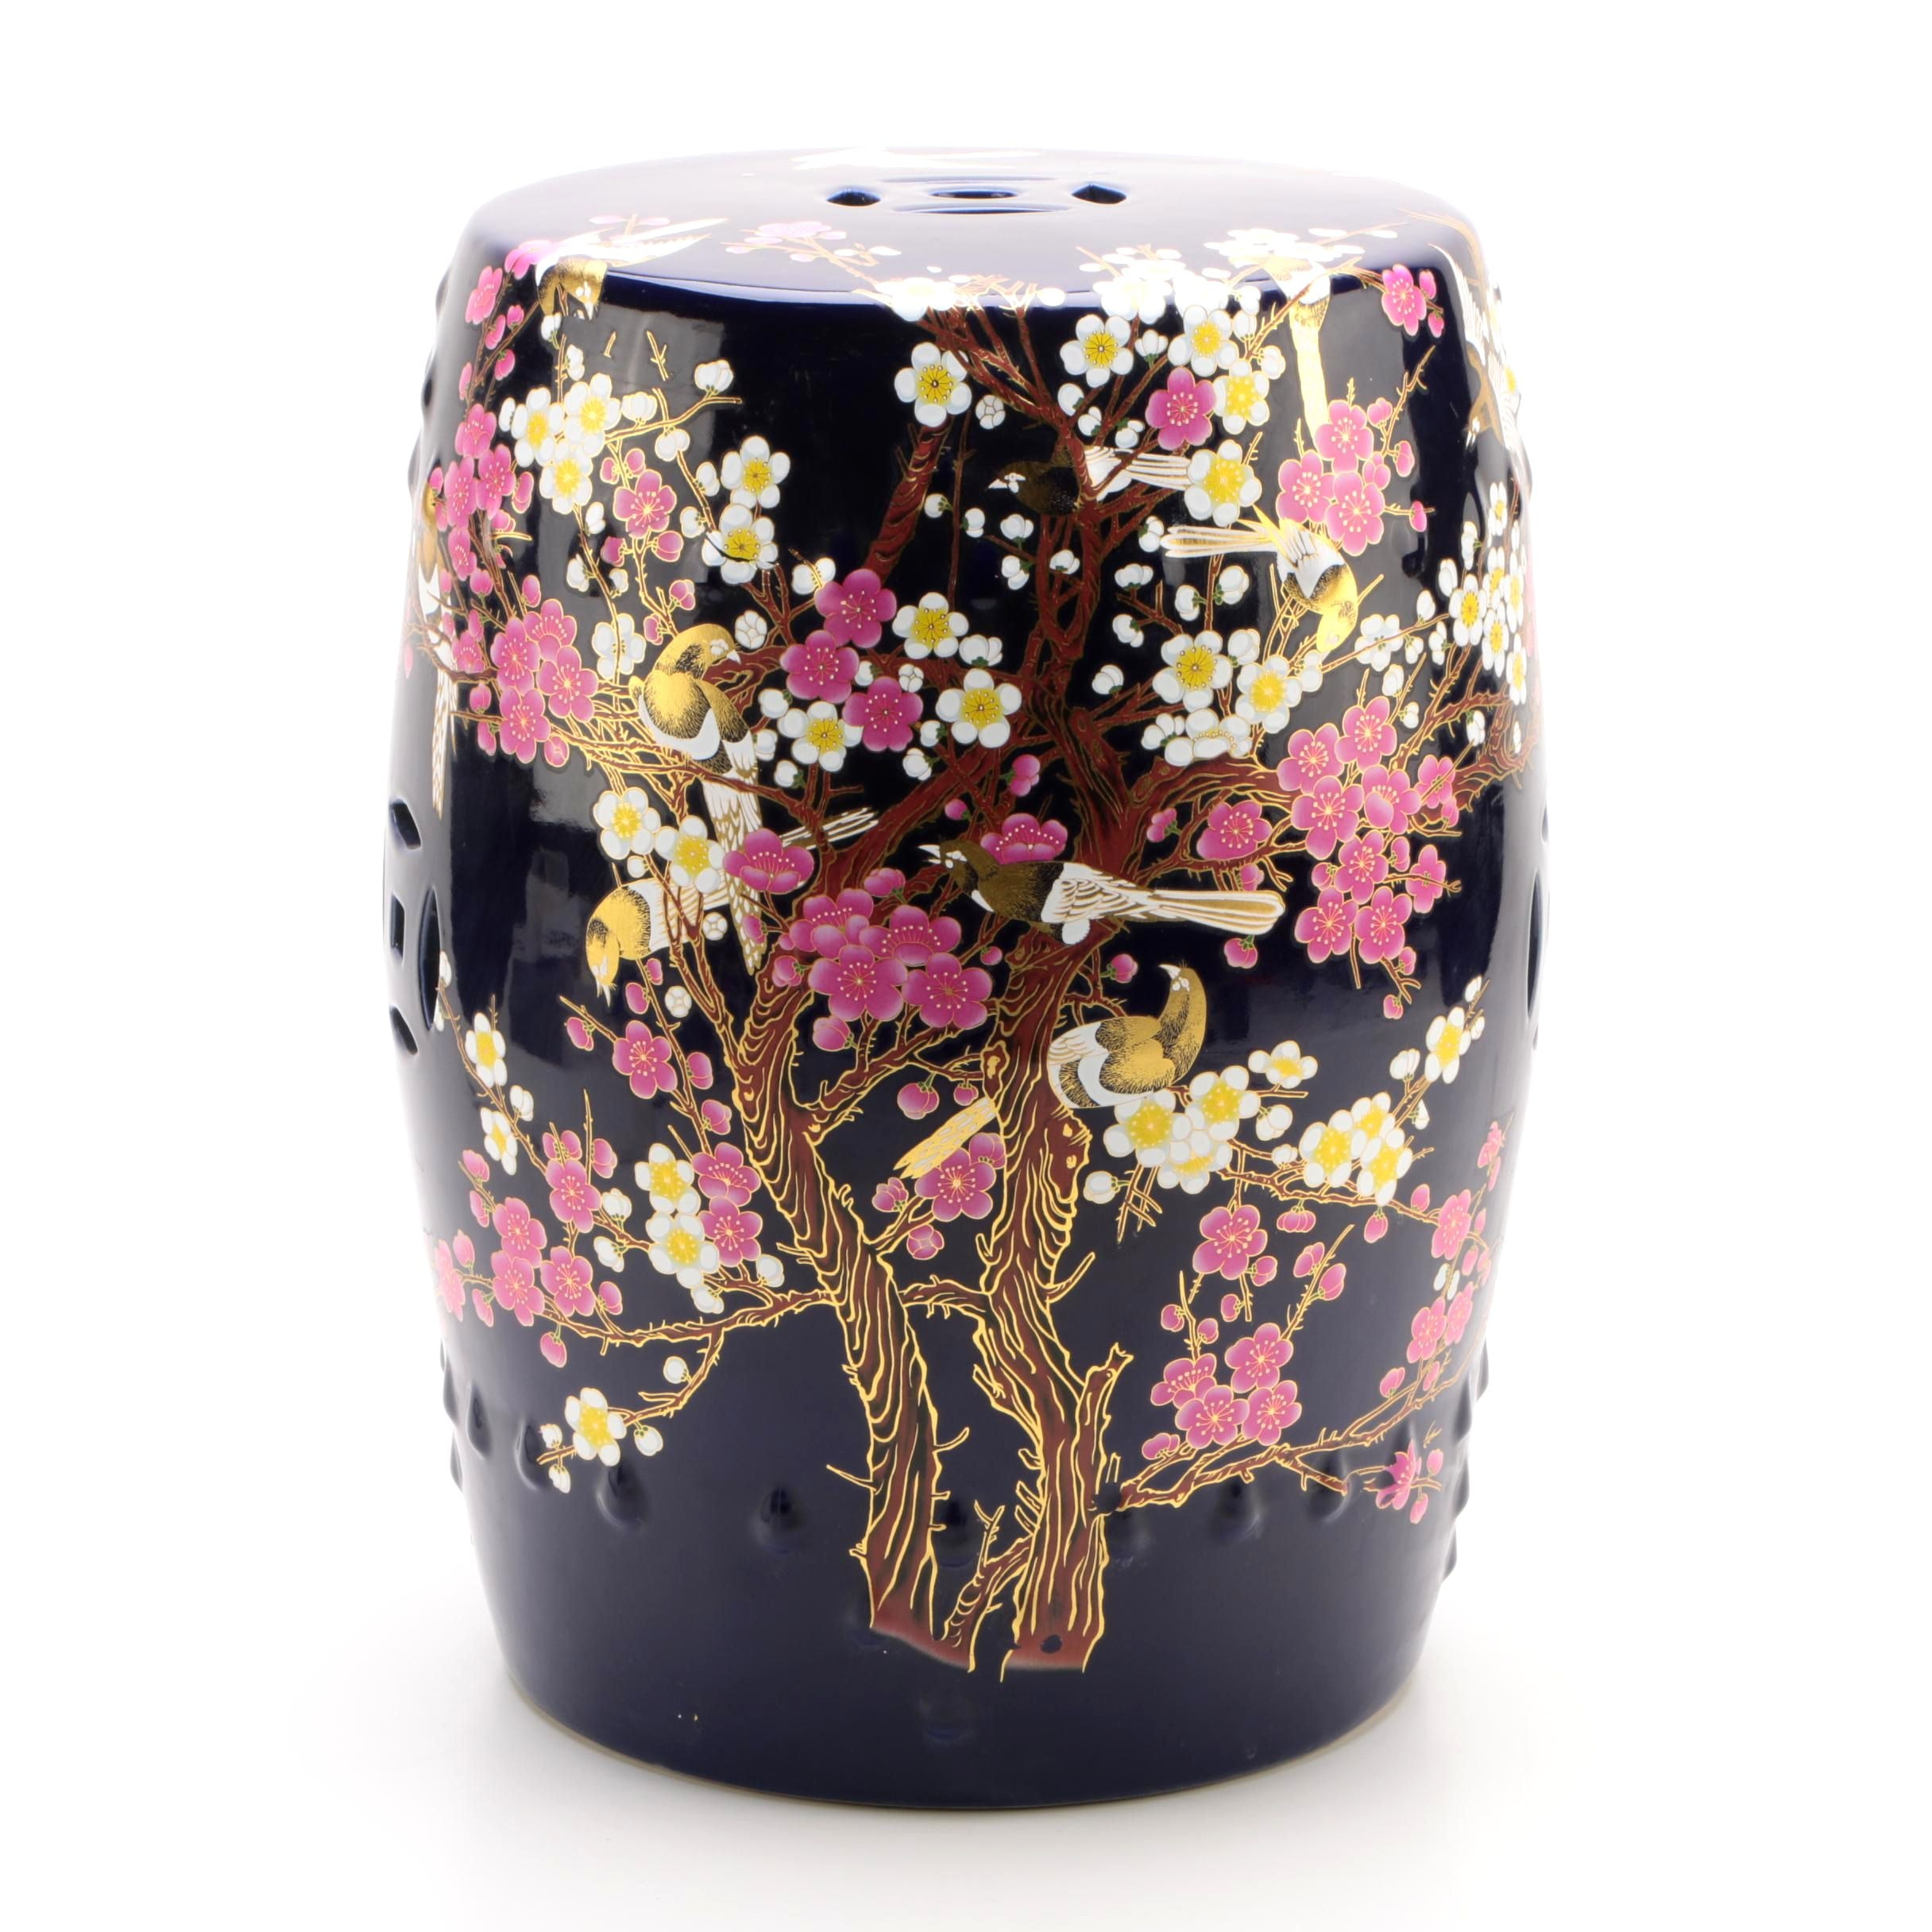 Chinese Hand-Painted Porcelain Garden Stool with Cherry Blossom and Bird Motif